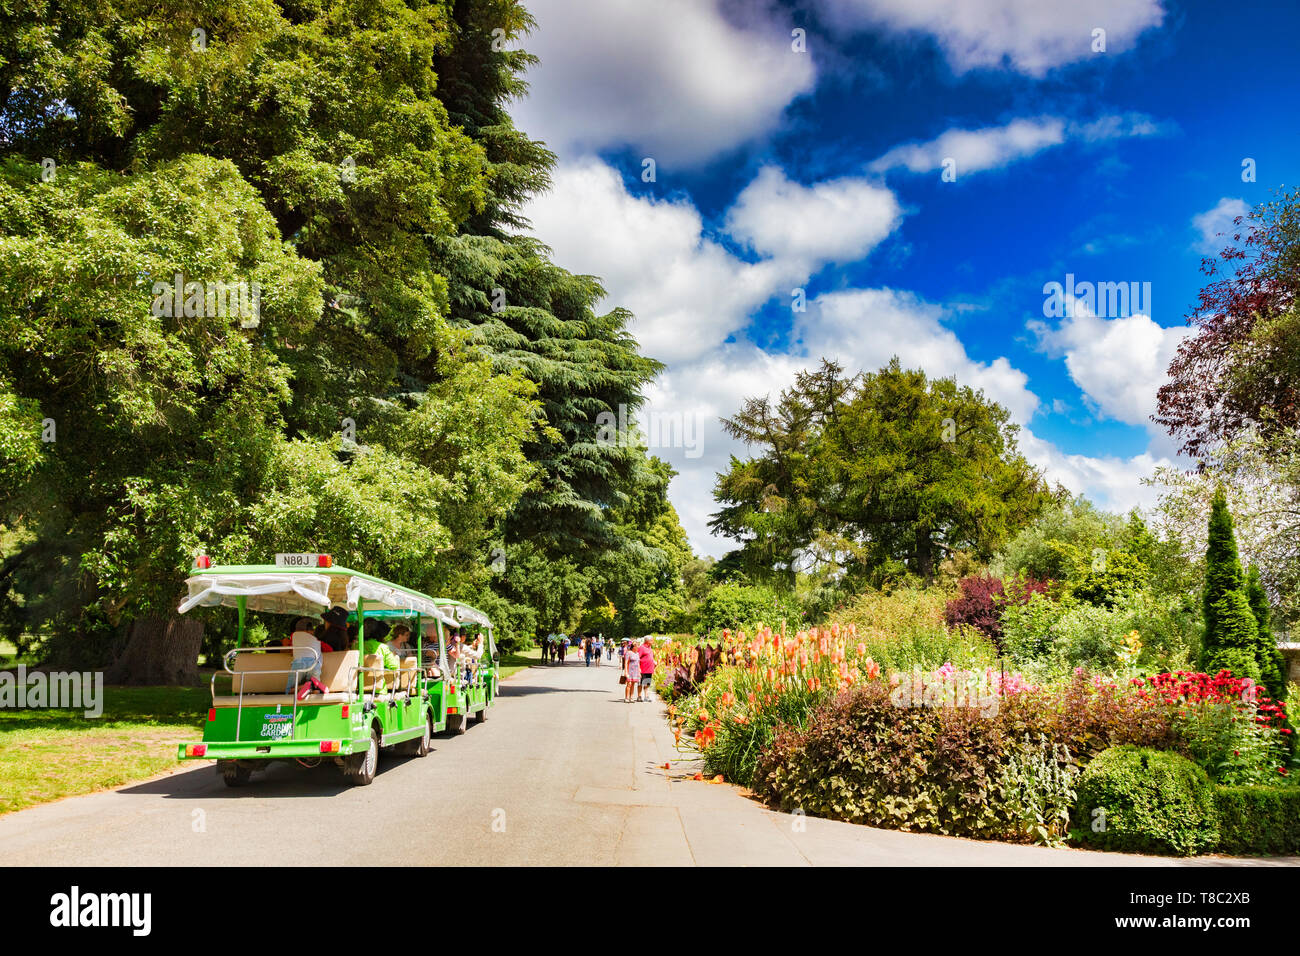 8 January 2019: Christchurch, New Zealand - Tourist train and pedestrian tourists admire the flowers in the herbaceous border, on a lovely summer day. Stock Photo